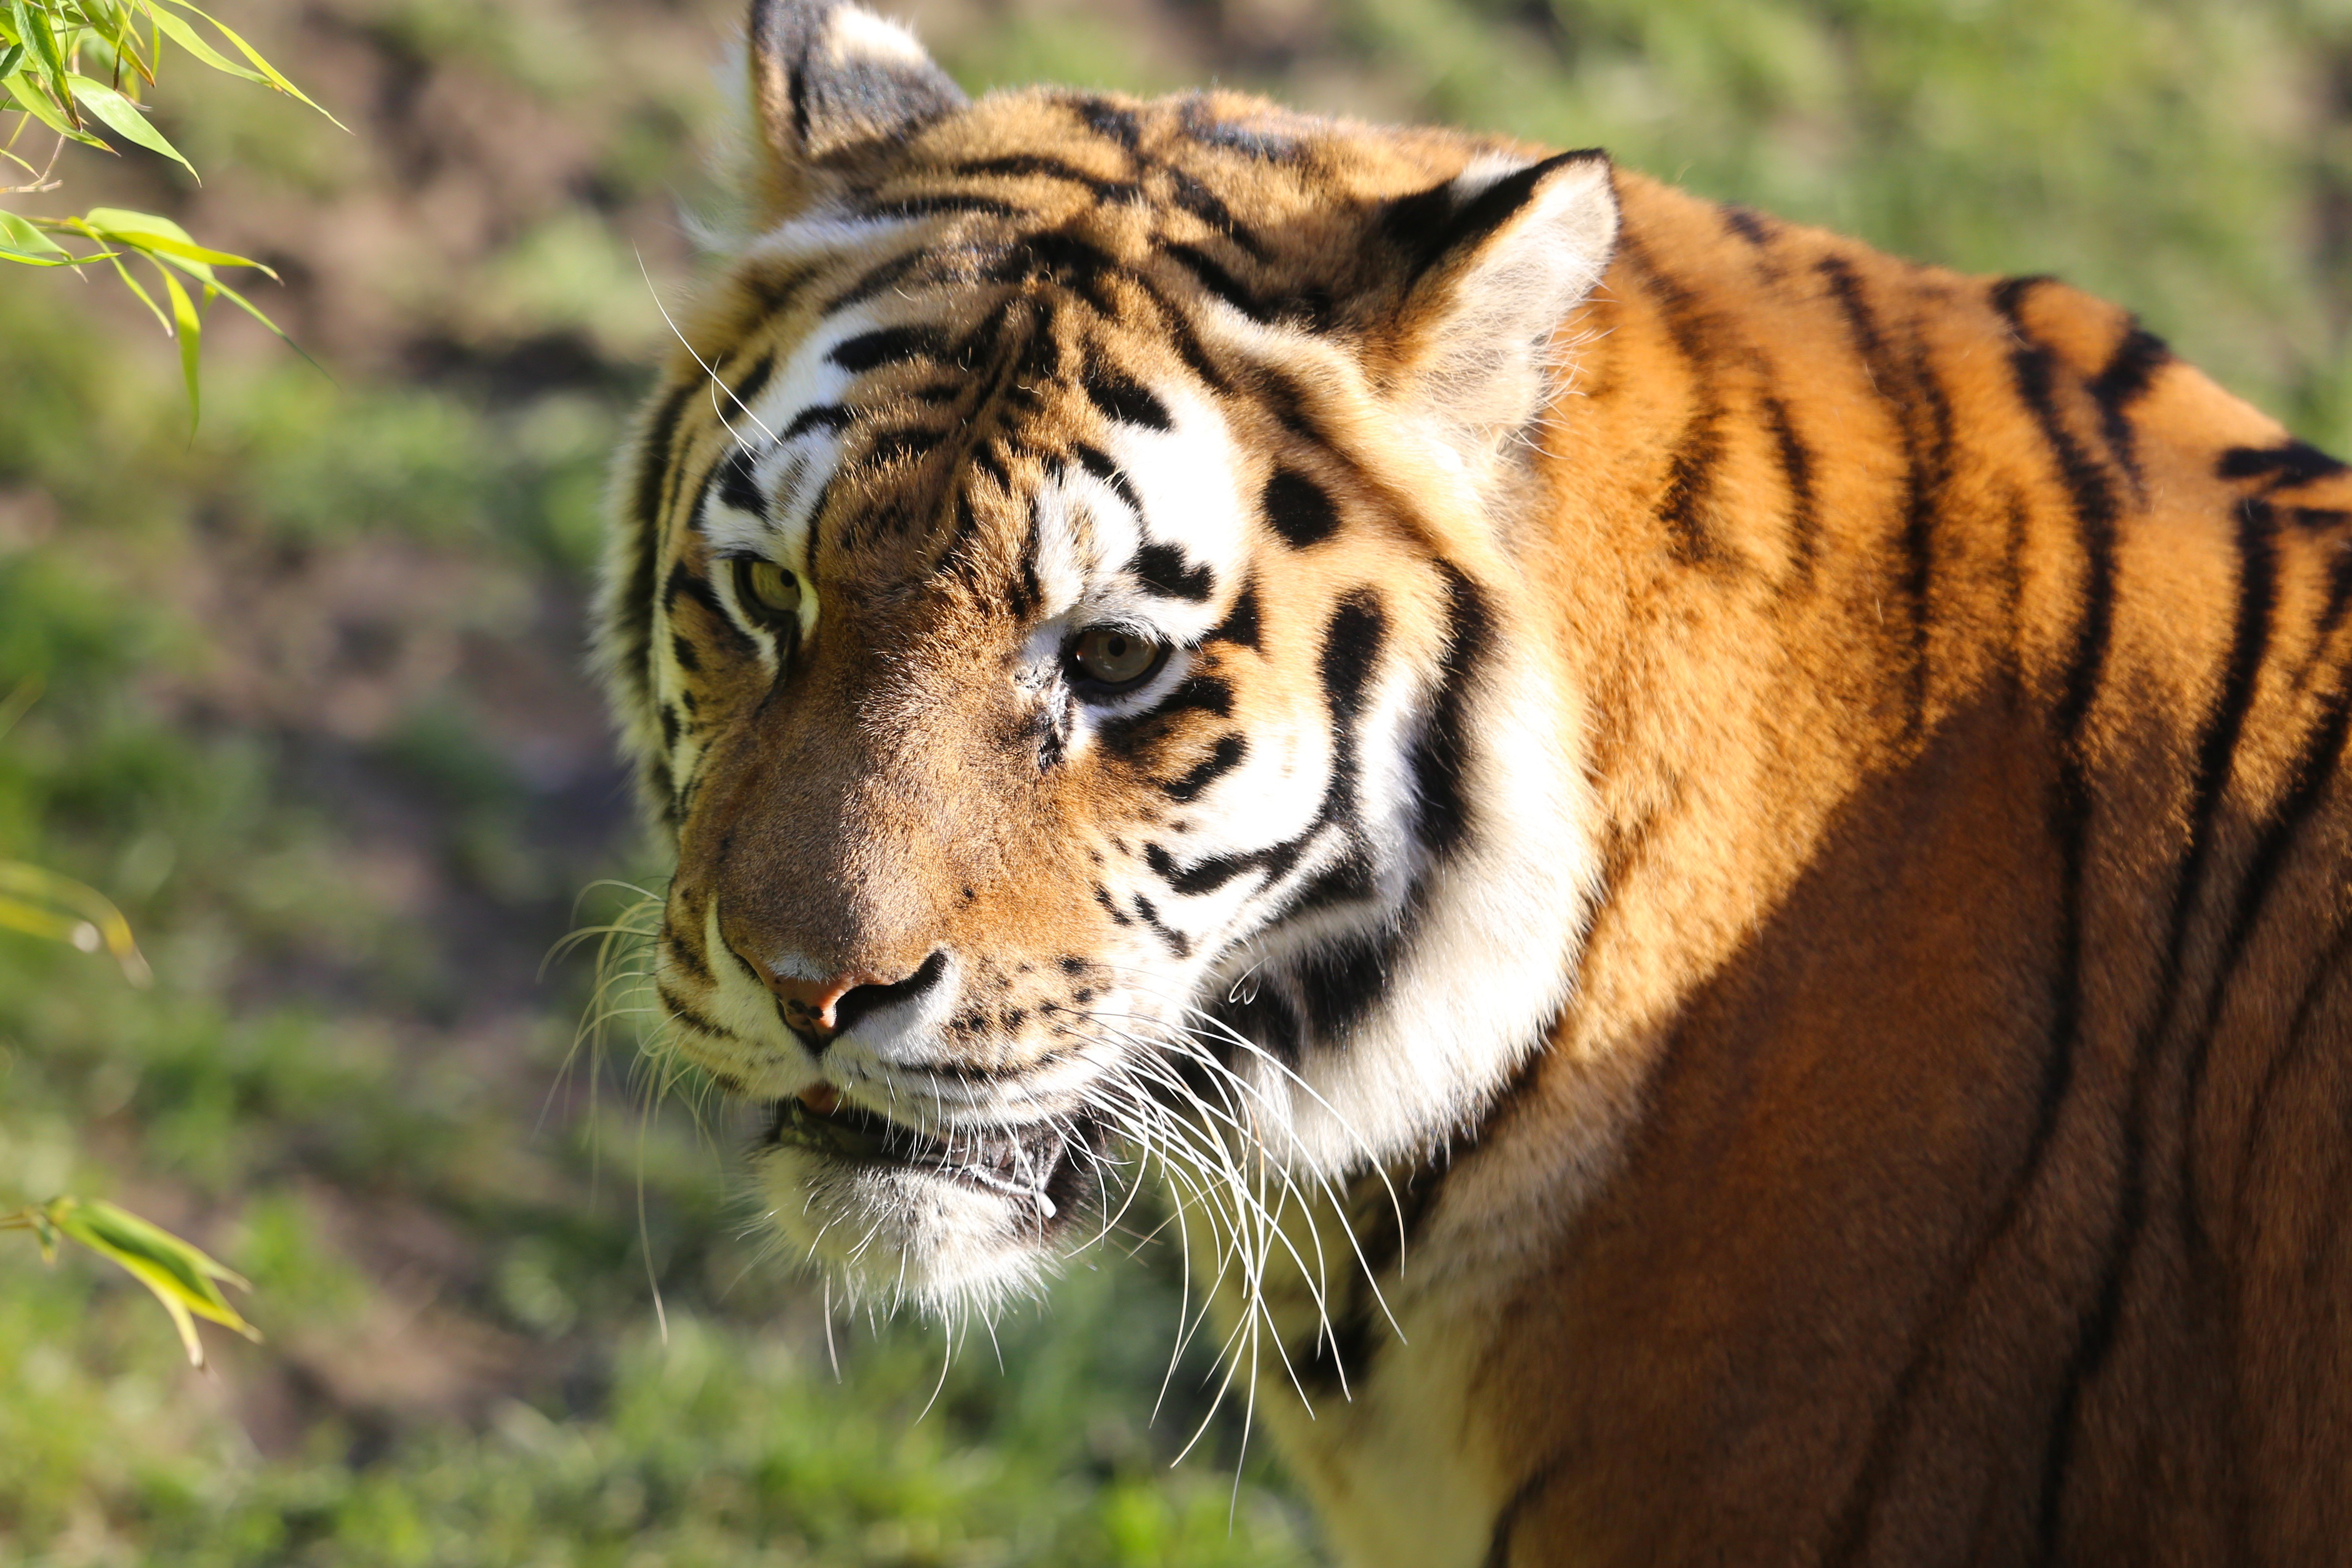 110216 download wallpaper Animals, Tiger, Big Cat, Sight, Opinion, Predator, Animal screensavers and pictures for free